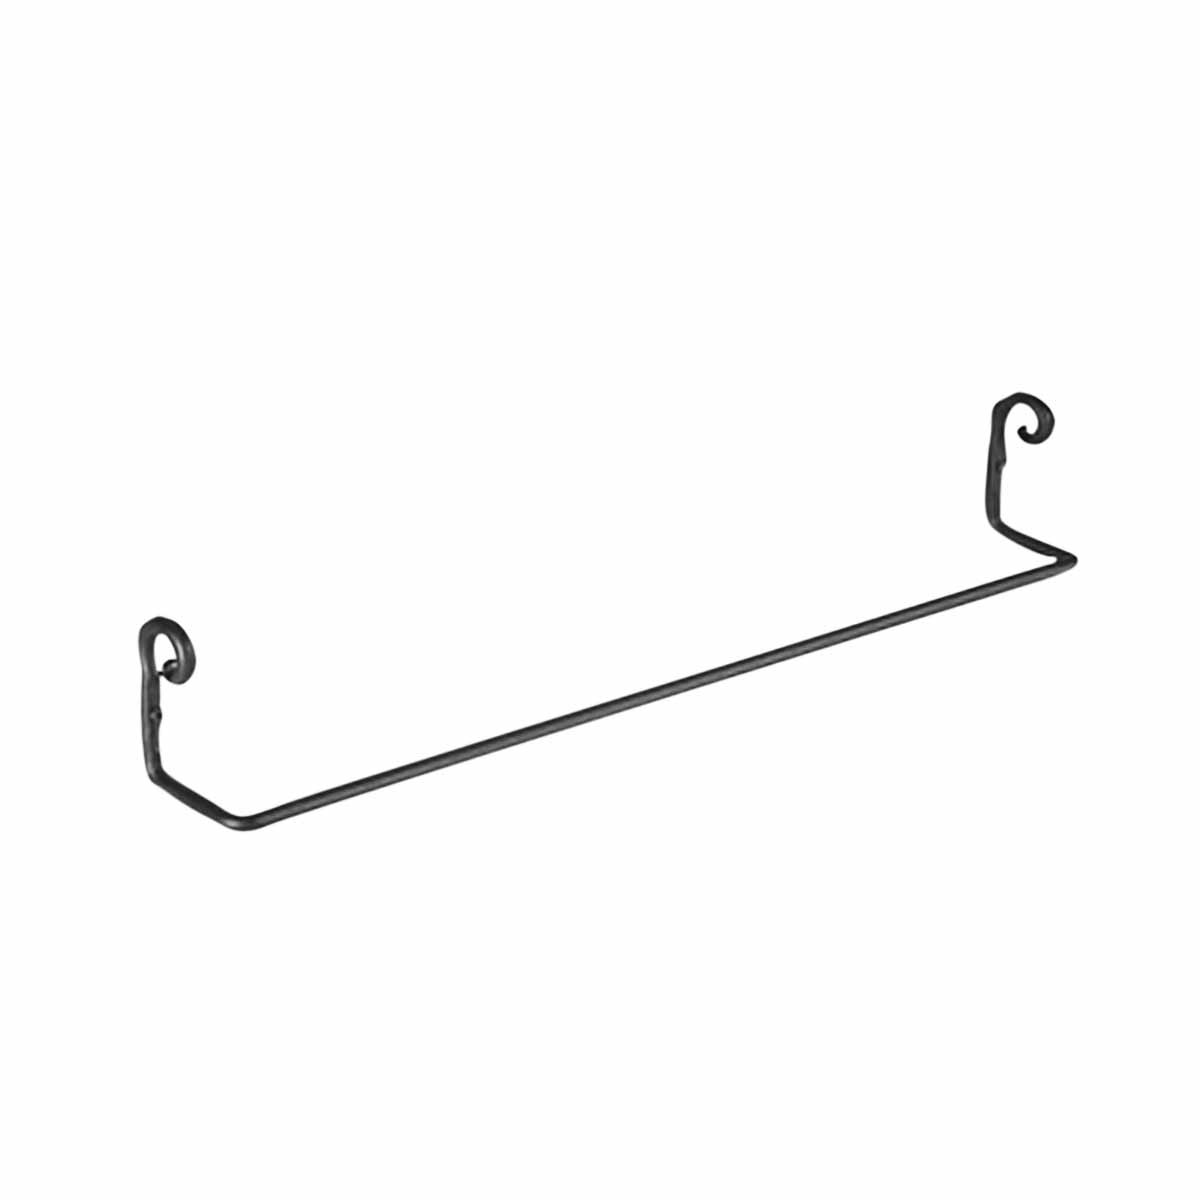 Wrought iron towel bar 30 7 8 inches pigtail for Wrought iron bathroom towel bars